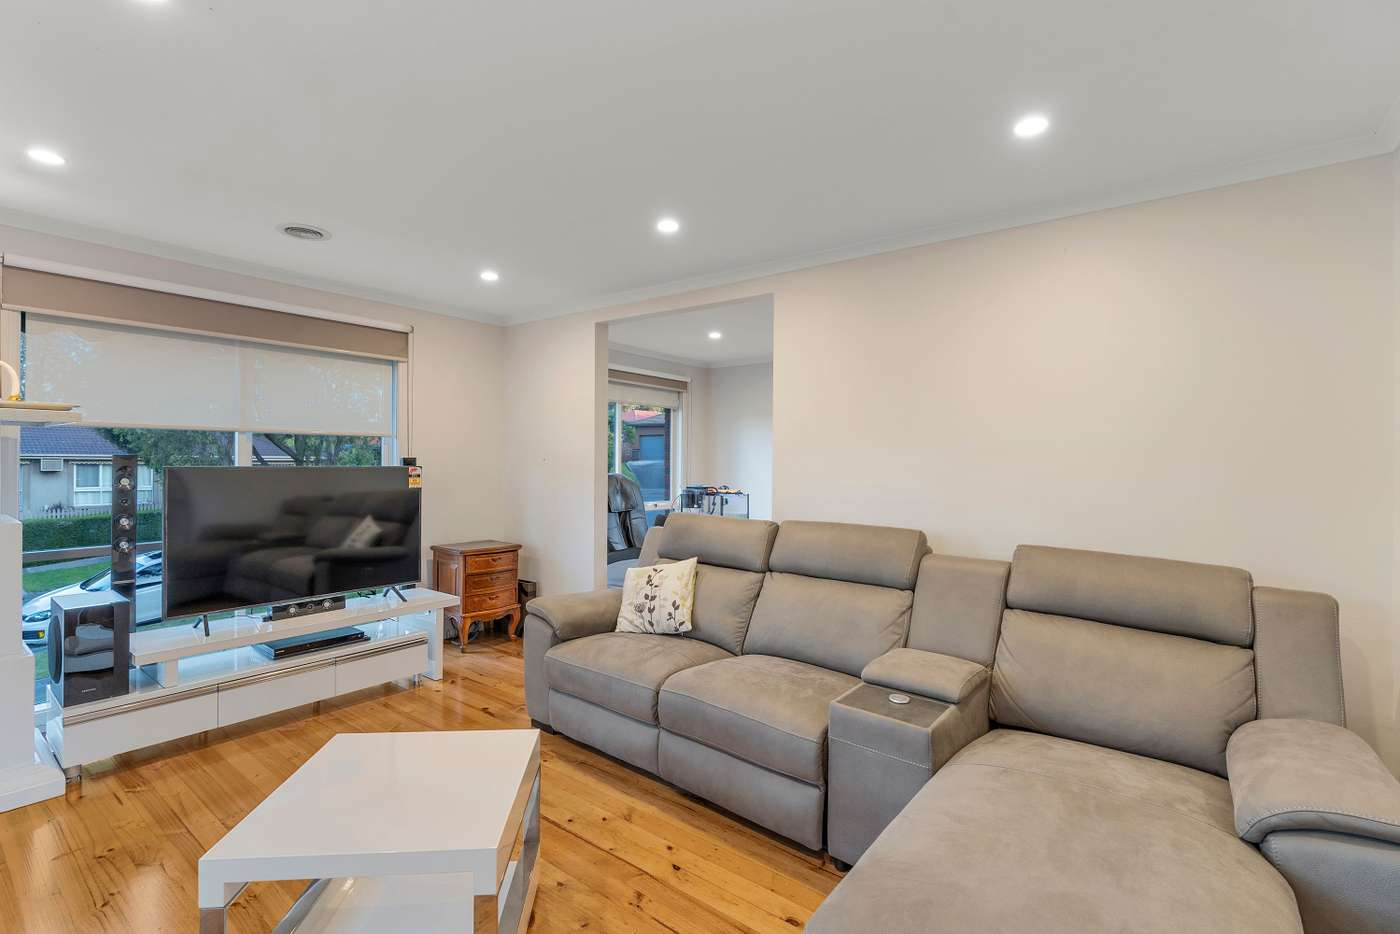 Sixth view of Homely house listing, 6 Mallee Court, Mulgrave VIC 3170